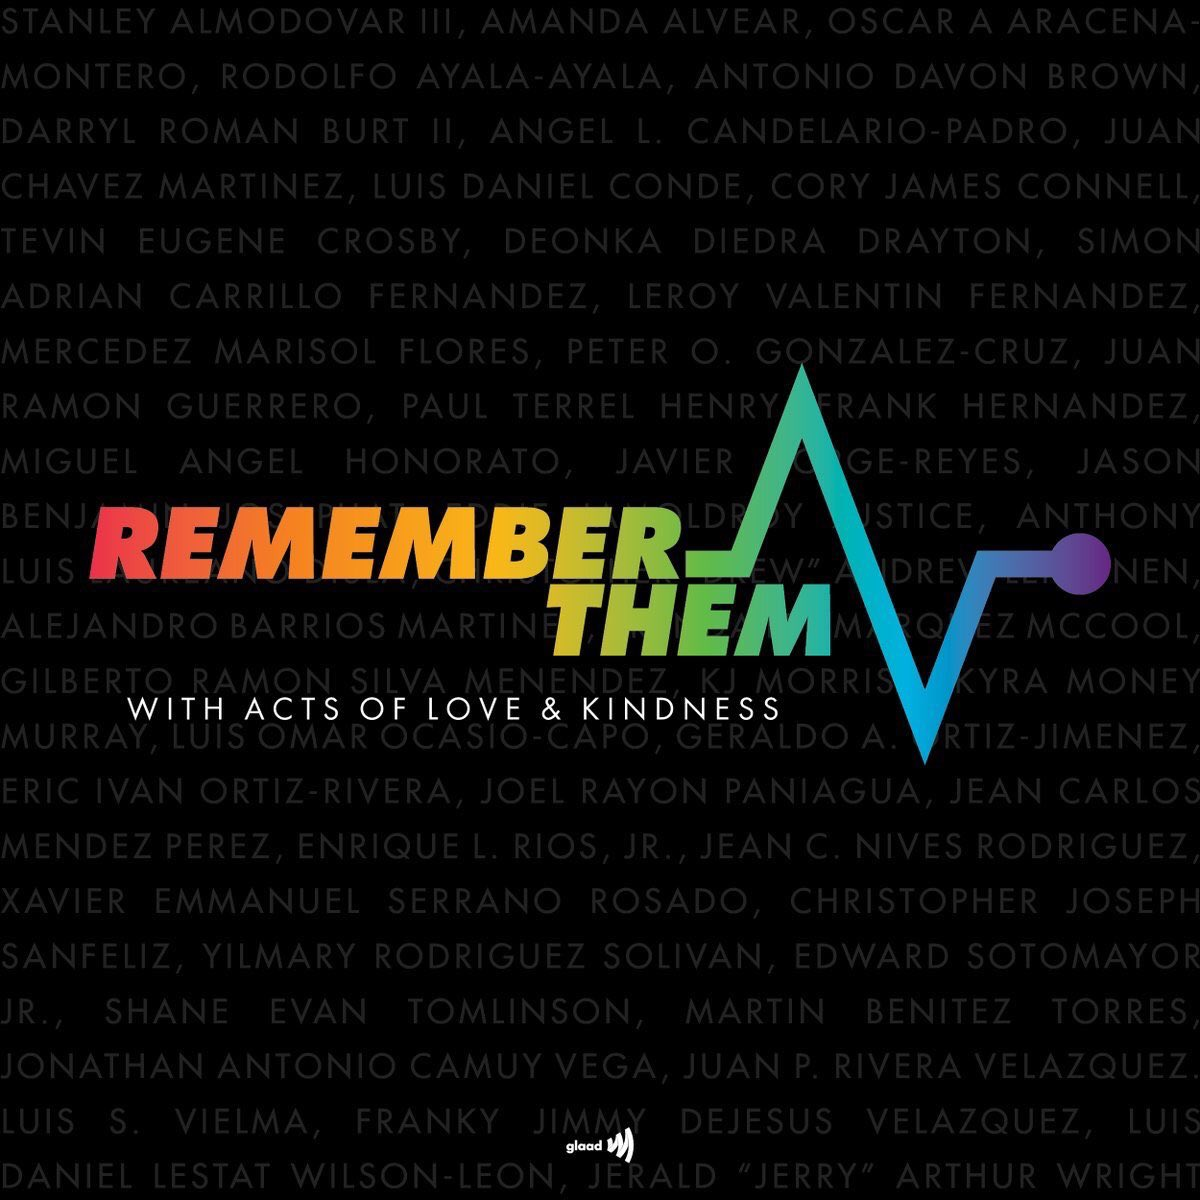 It's been 3 years since the the #Pulse shooting. It was the deadliest attack on the LGBTQ+ and queer Latin community in recent history. A stark reminder that repression and hatred are still very prevalent in society today. We won't forget their names. R.I.P. 🏳️‍🌈#OrlandoUnited